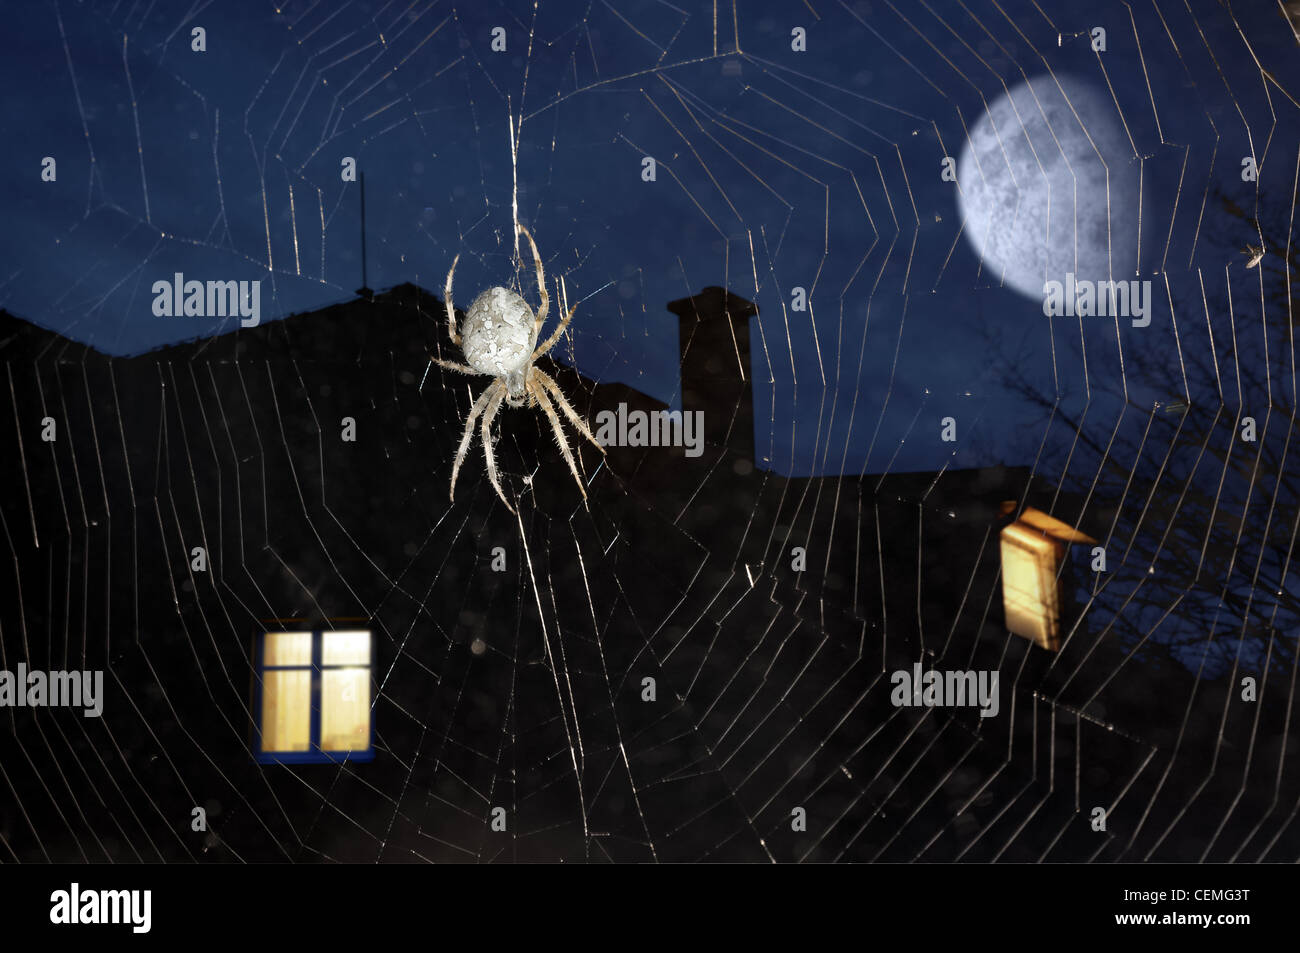 Spider on cobweb against night sky with urban buildings in the background - Stock Image